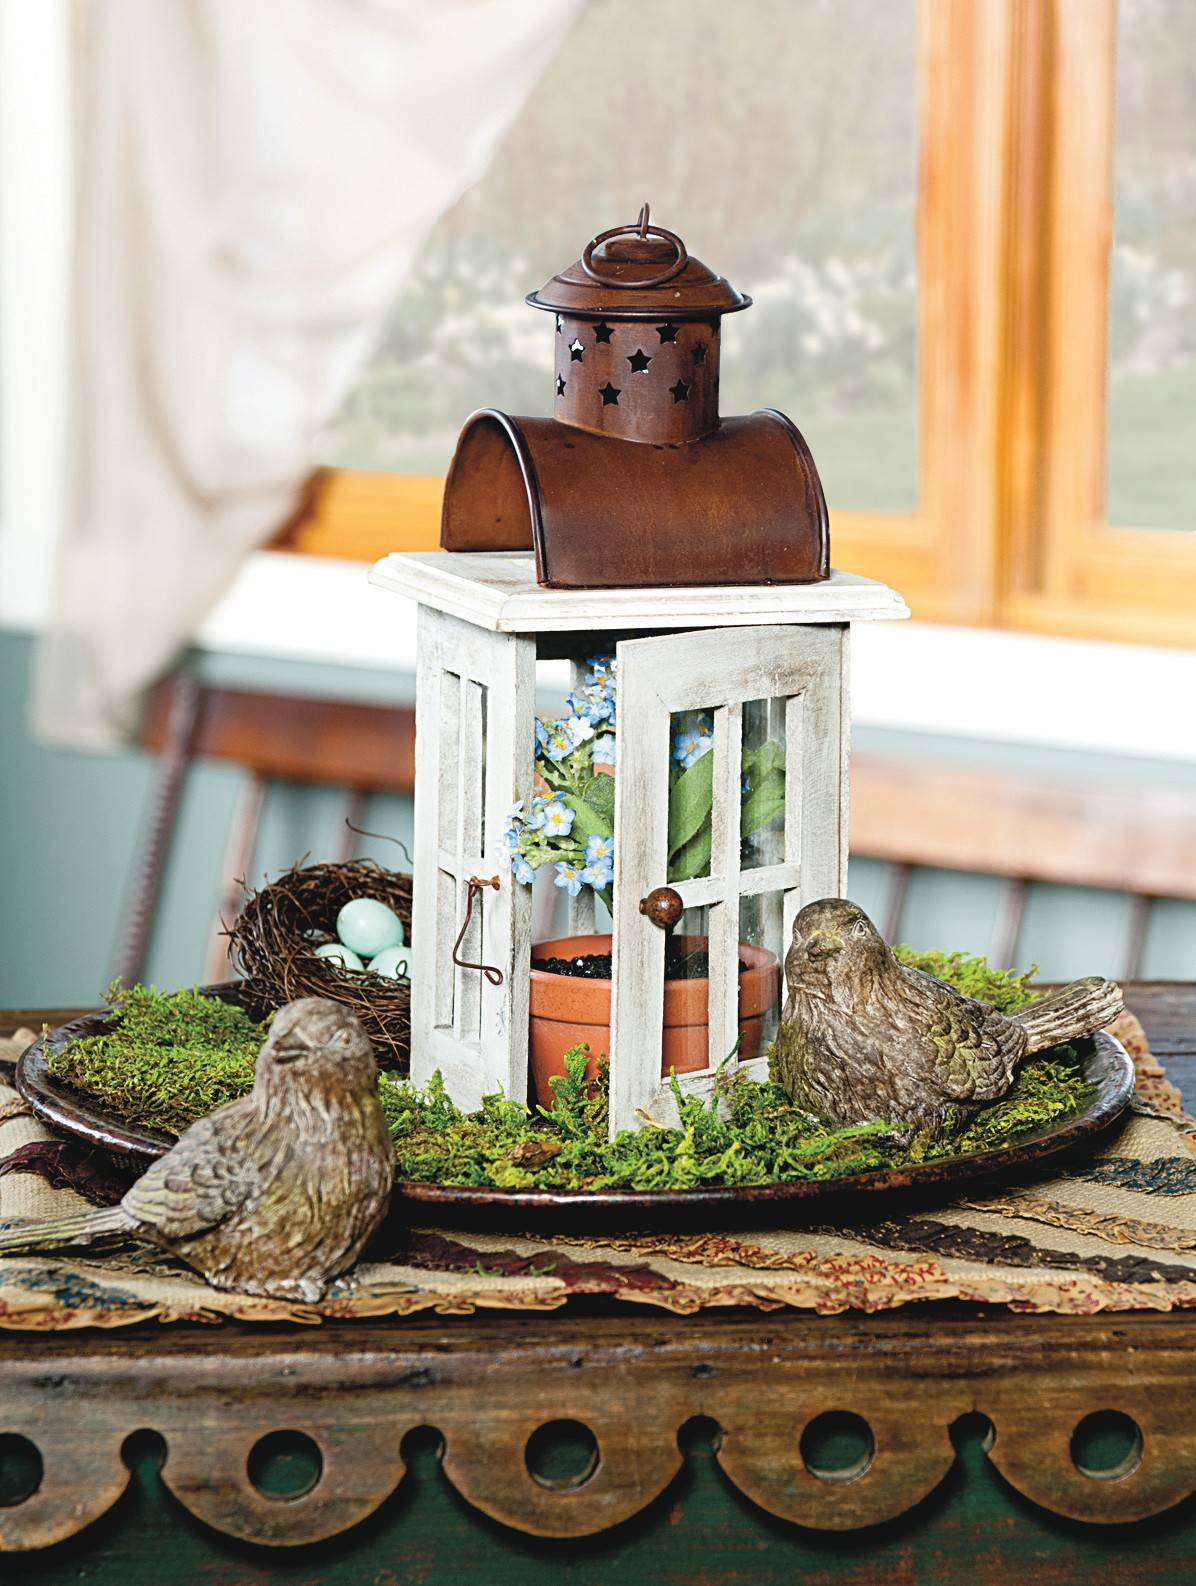 Instead of using a lantern for its traditional purpose, take out its light source and replace it with a pretty potted plant. To give it more visual impact, rest it on a platter loaded with moss, and then add a few bird accents.